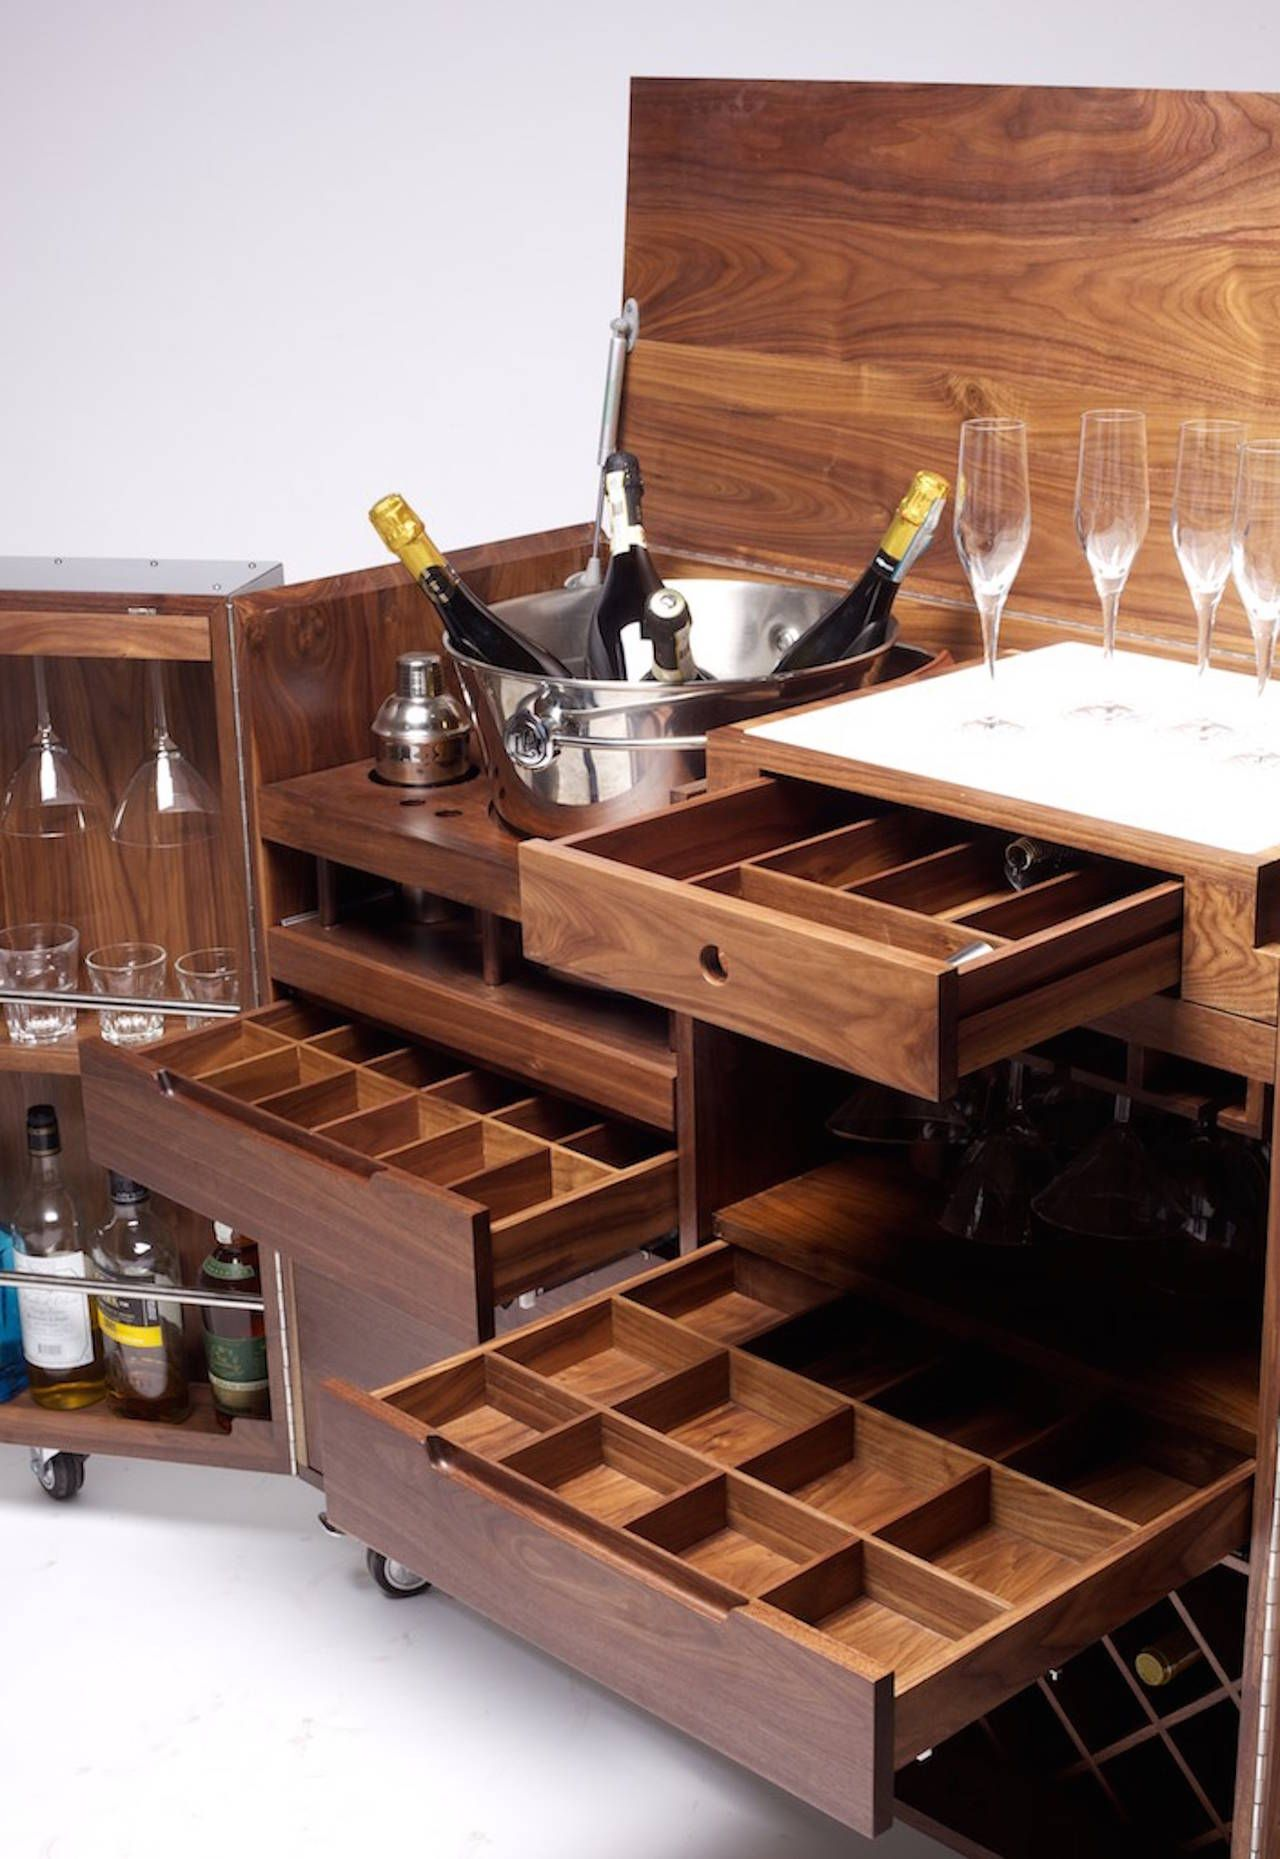 Mobile Bar And Wine Cabinet In Walnut And Stainless Steel By Naihan Li 8 Photo Gallery